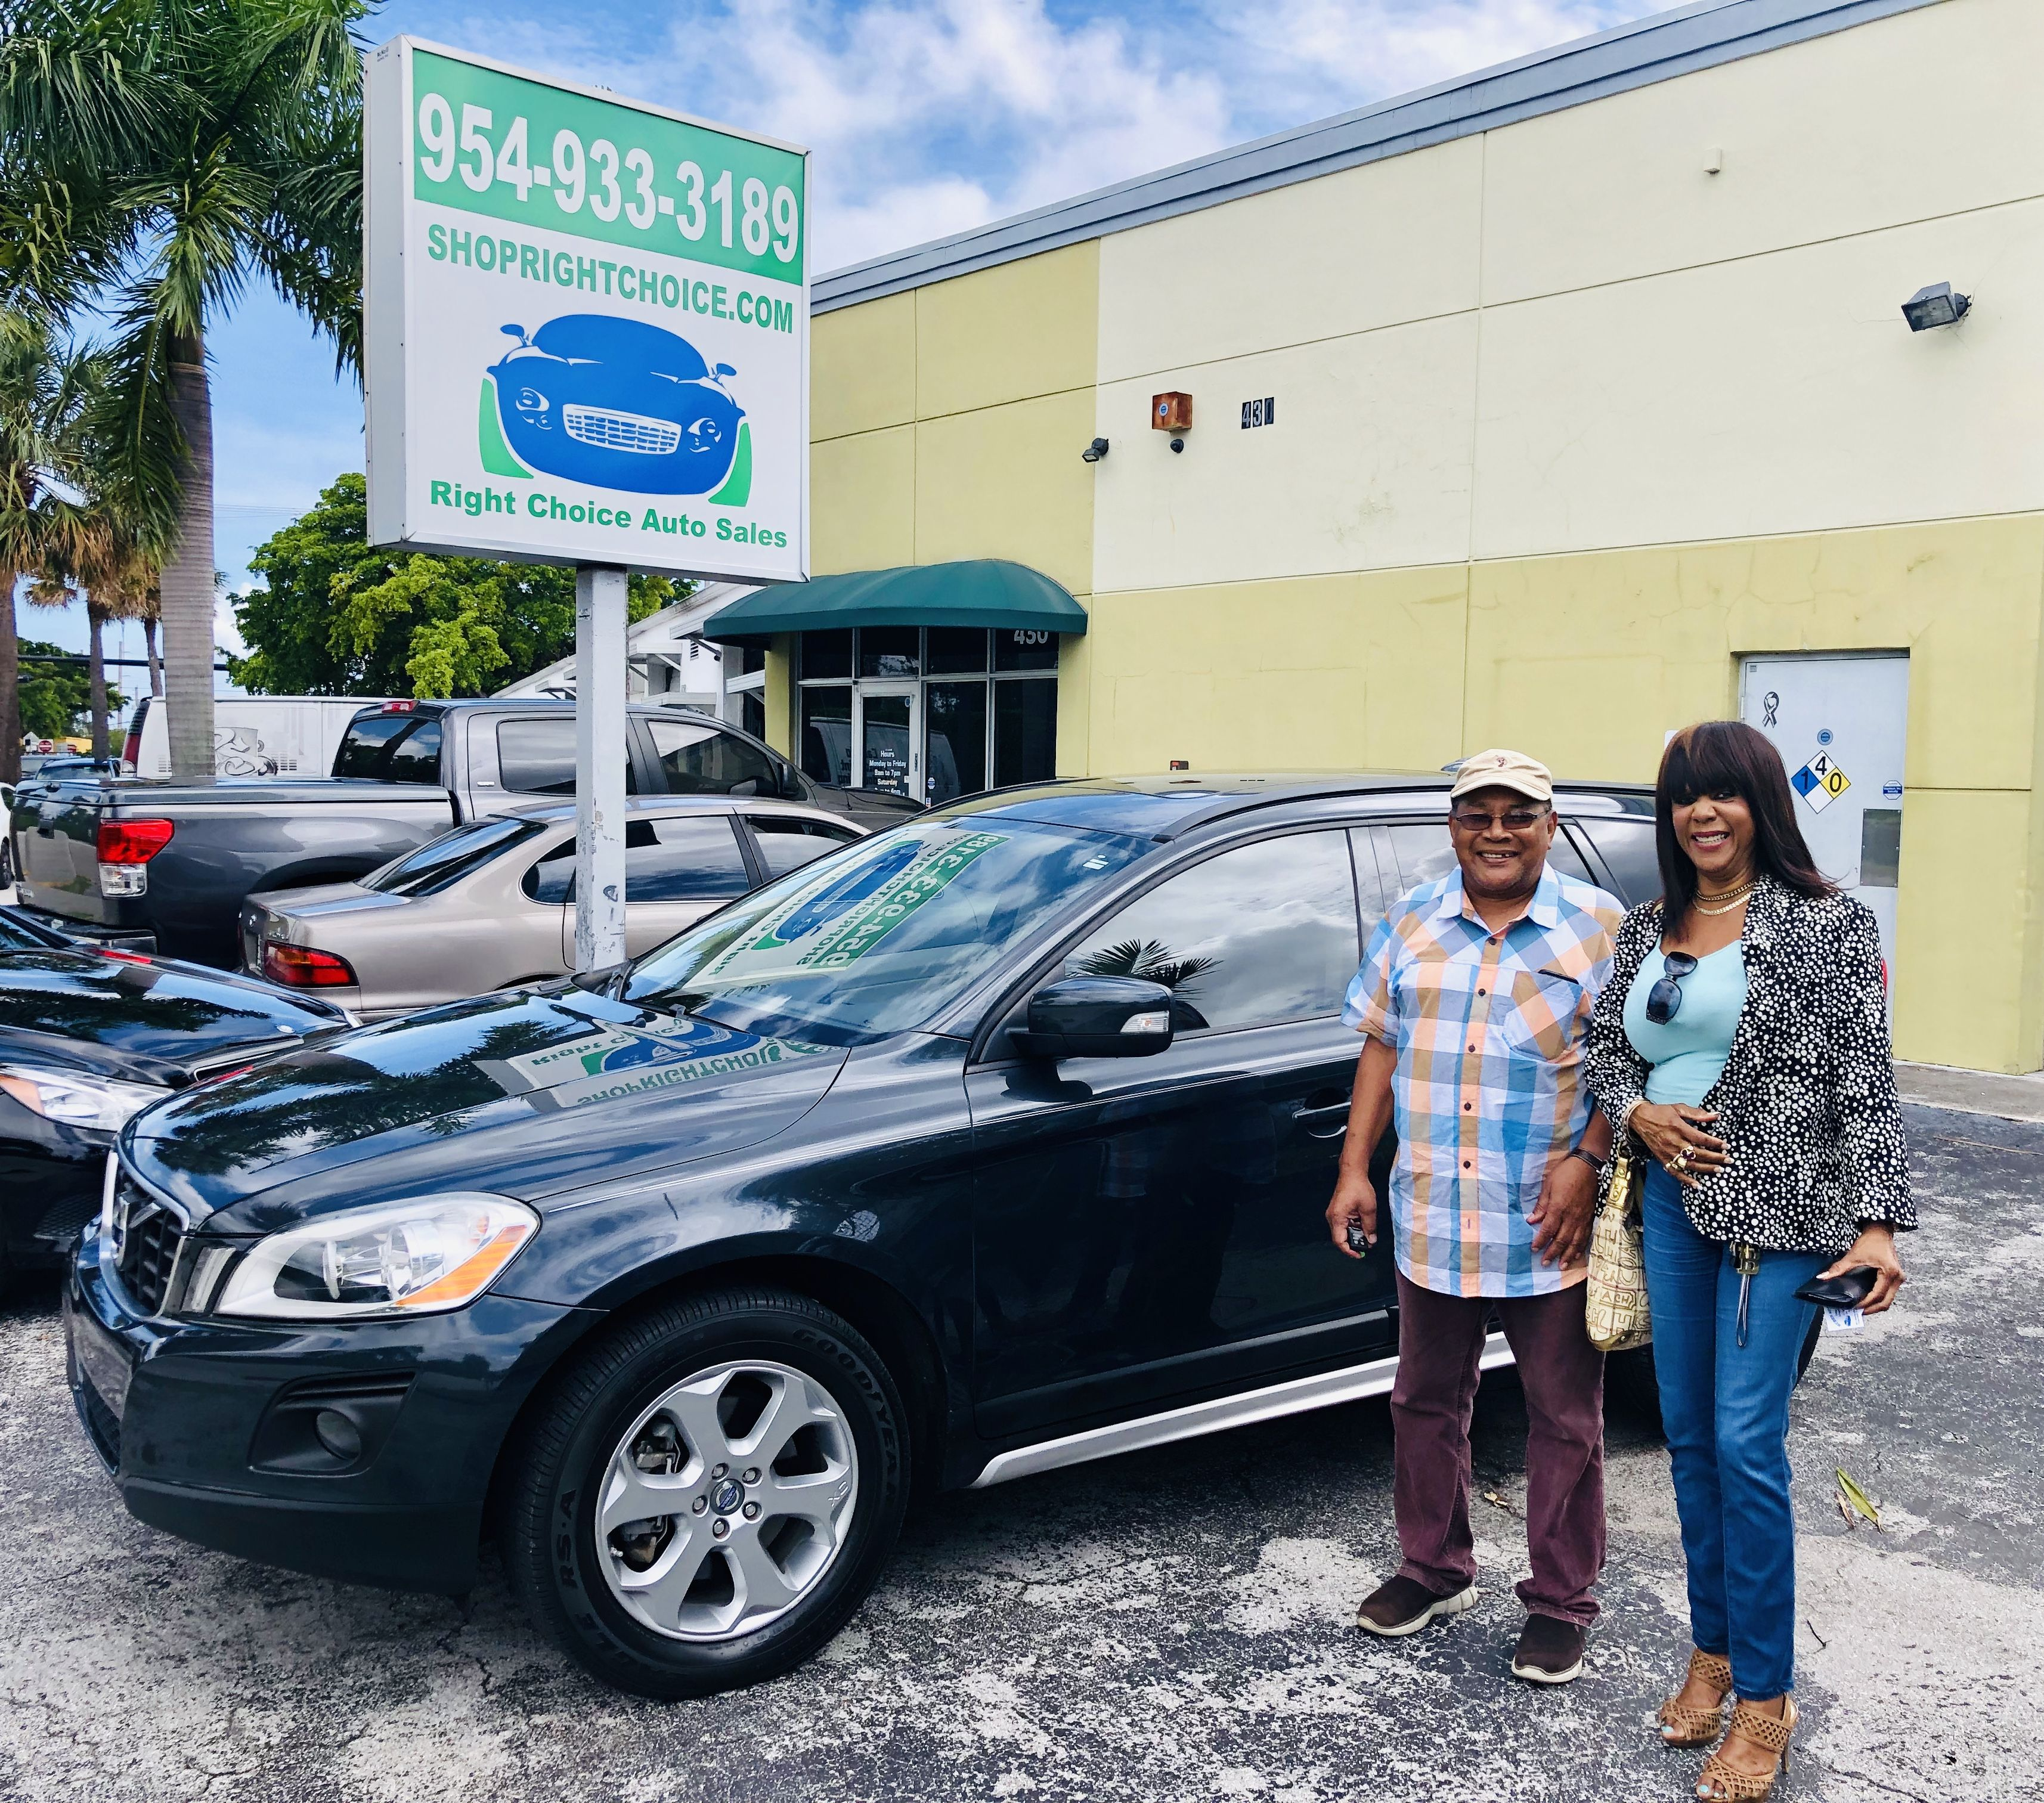 Happy Customers Lloyd Althea At Right Choice Auto Sales In Pompano Beach Florida With Their Like New 2010 Volvo Cars For Sale Used Luxury Cars Pompano Beach